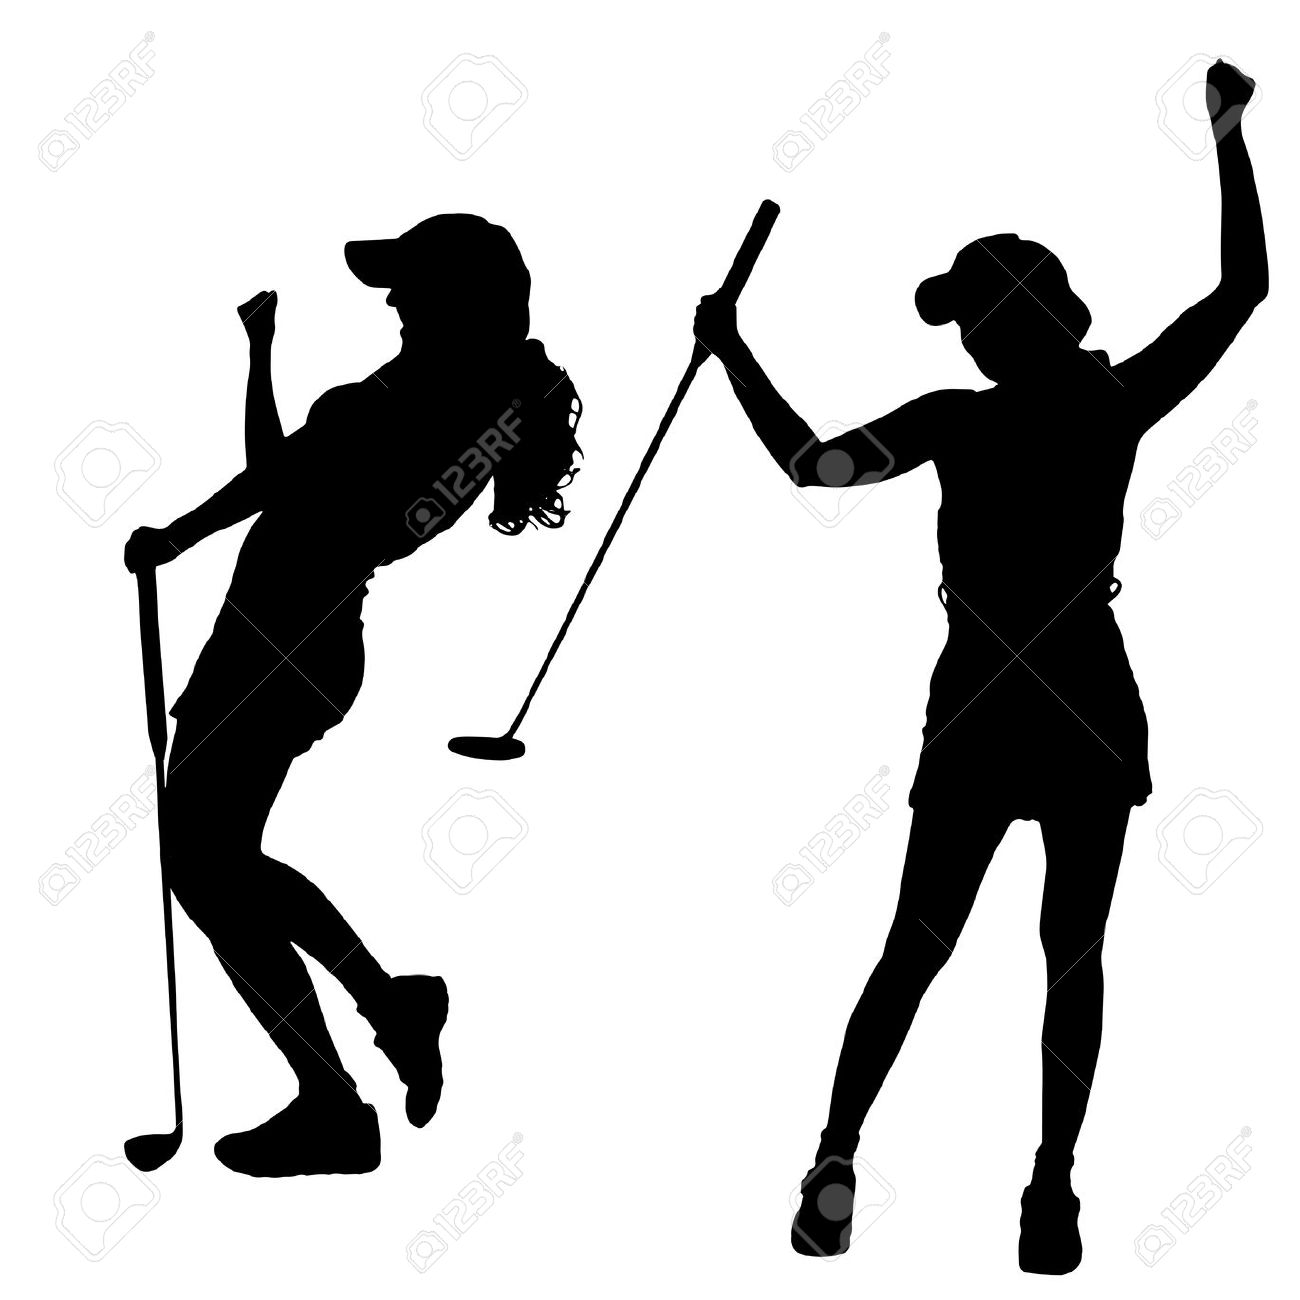 Golfing clipart lady. Ladies golf free download